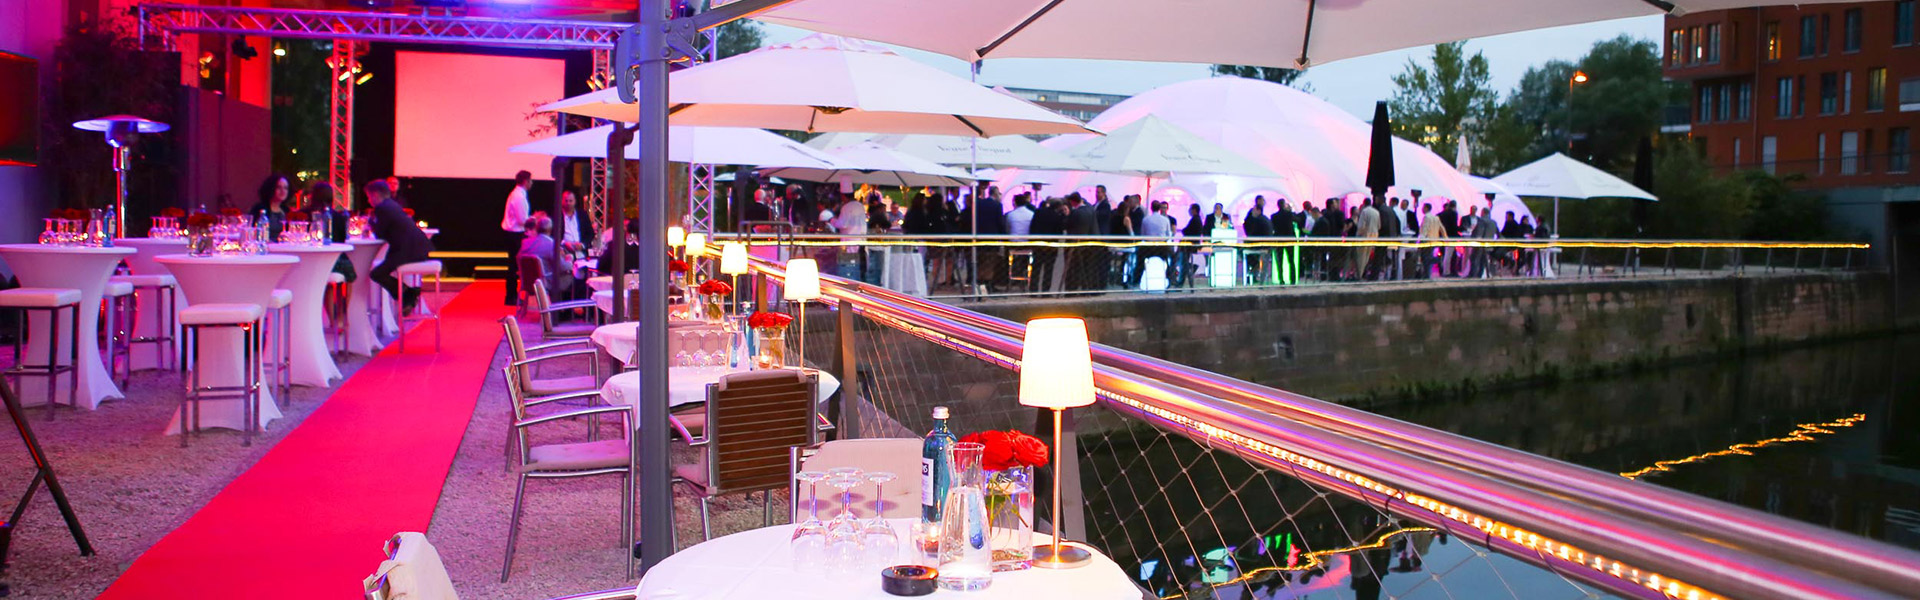 location-hafen-event